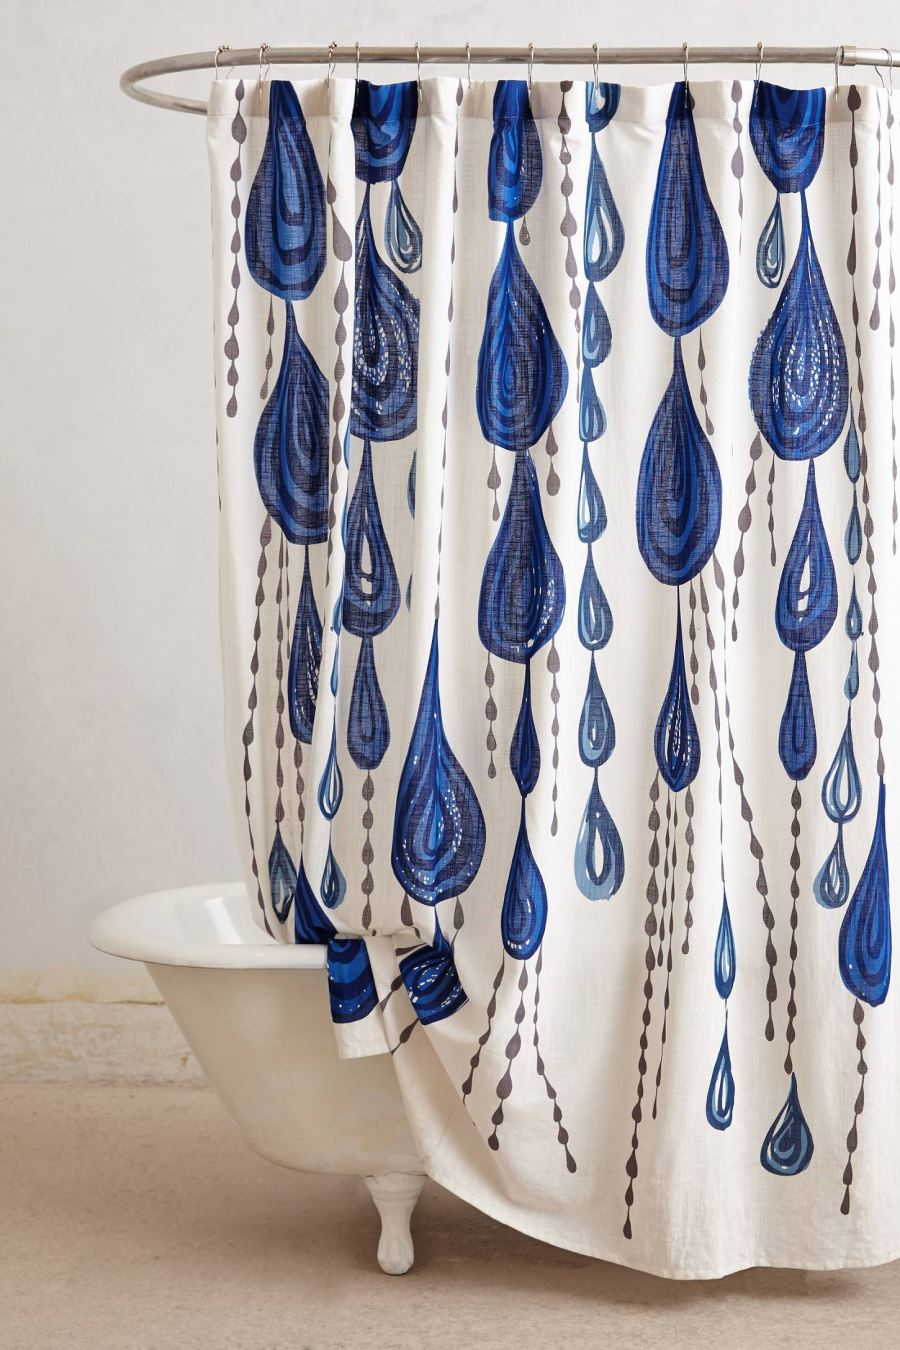 Raindrop shower curtain from Anthropologie